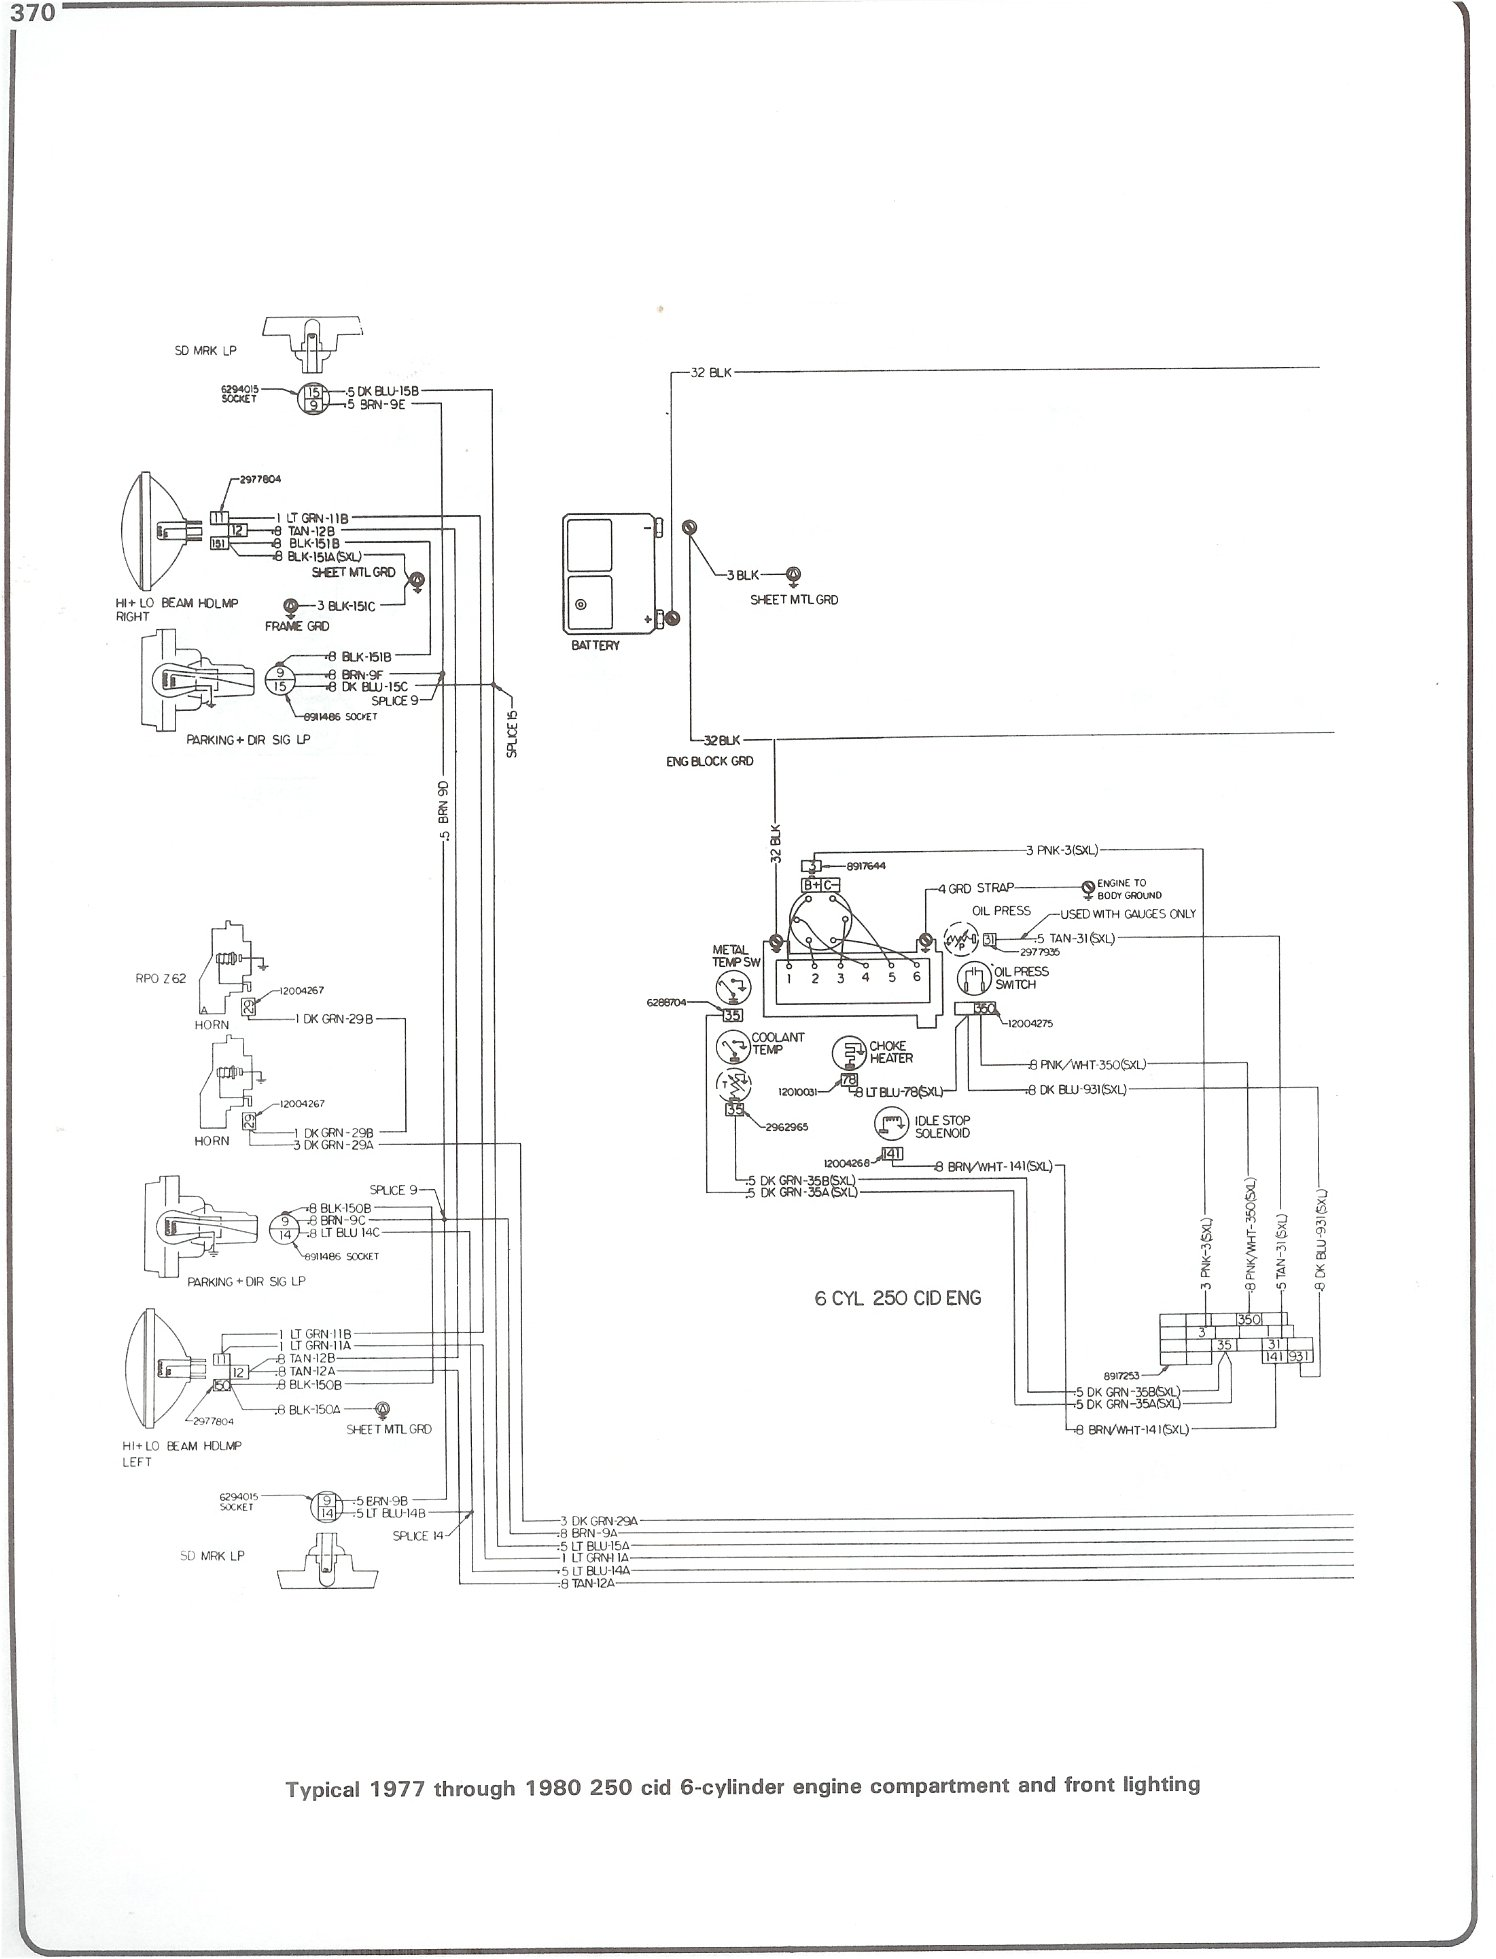 Wiring Diagram For 1980 Gmc Truck Farmall B Complete 73 87 Diagrams77 80 250 I6 Engine And Front Lighting